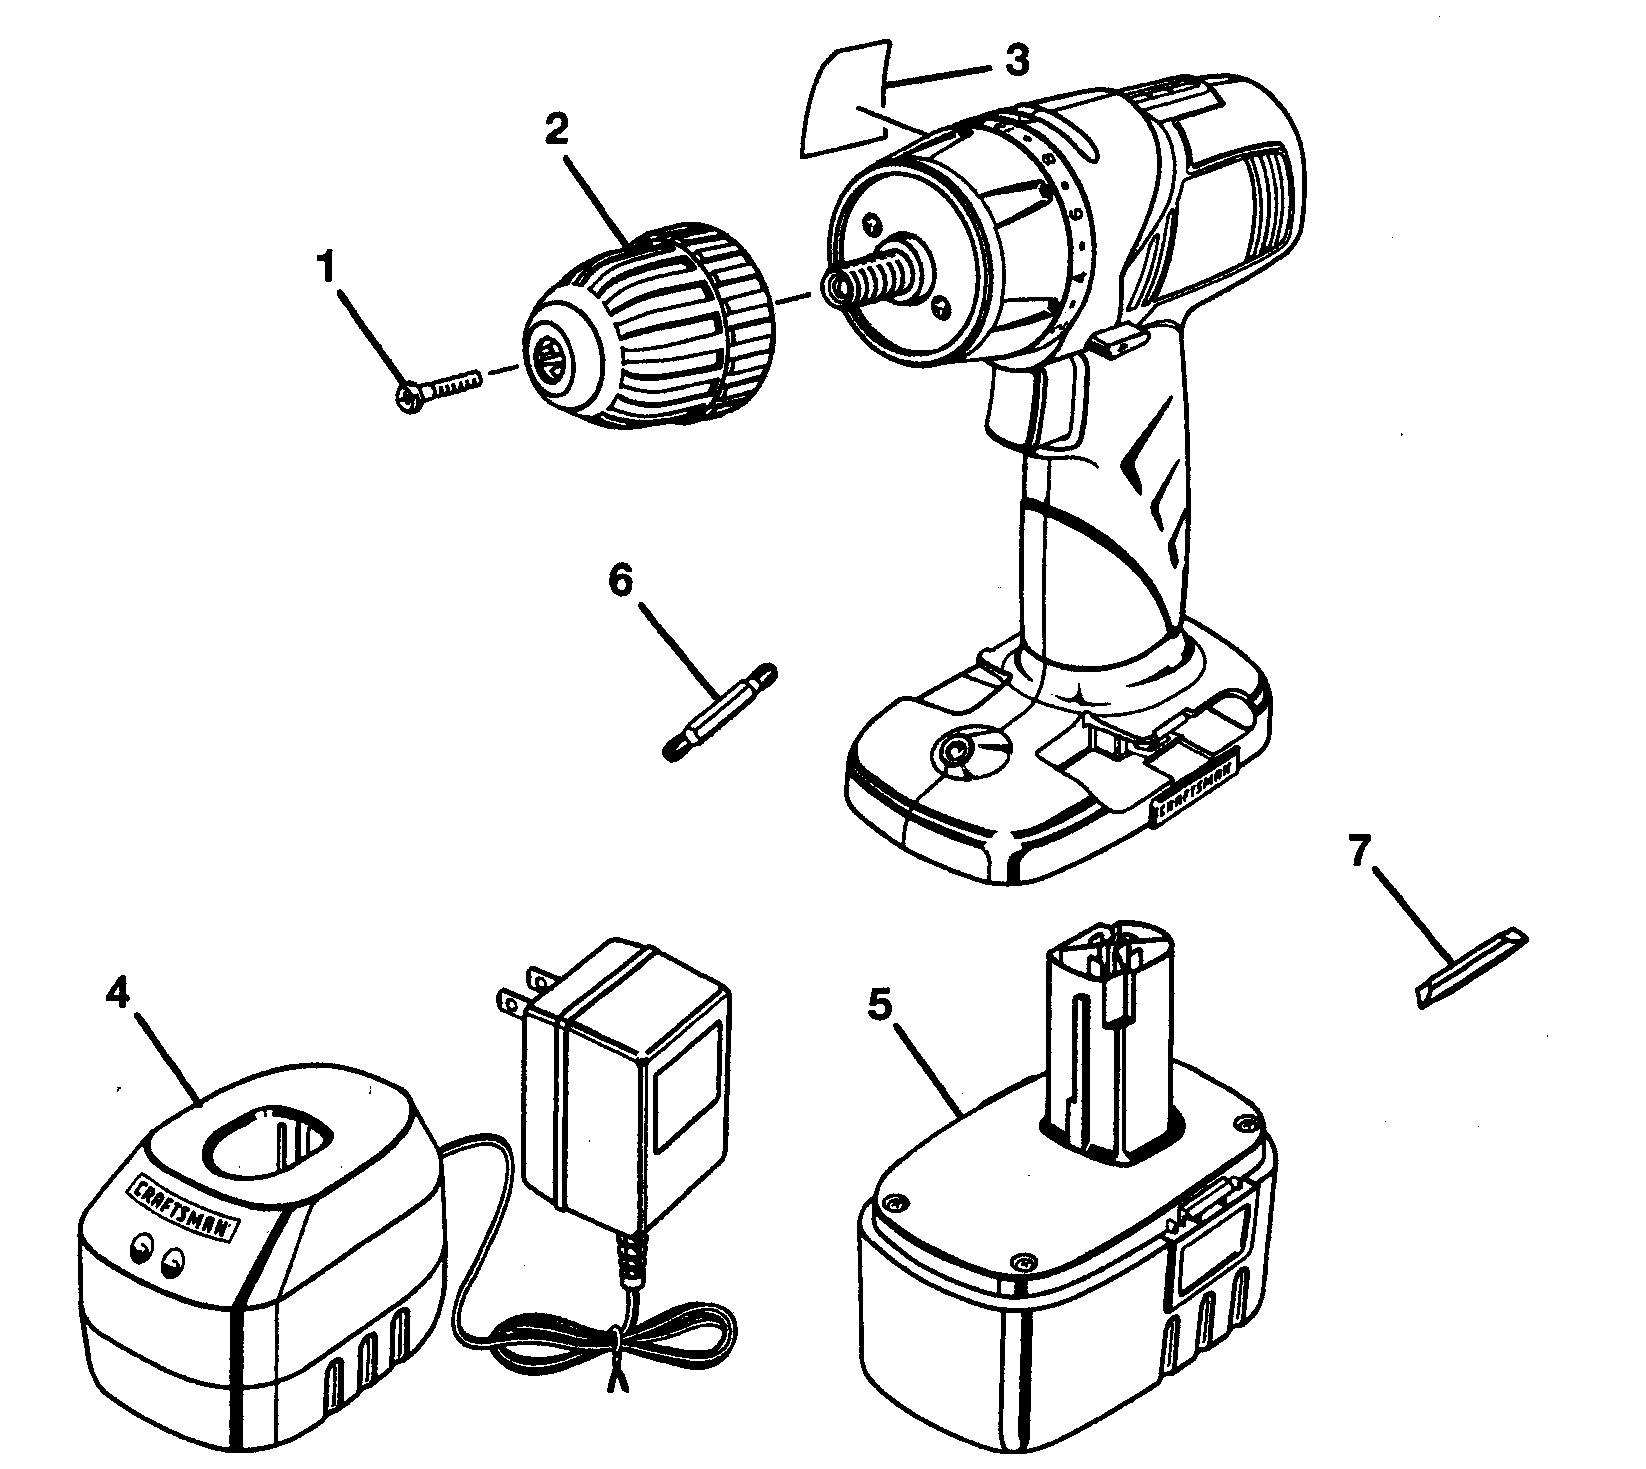 Craftsman 315115340 drill diagram